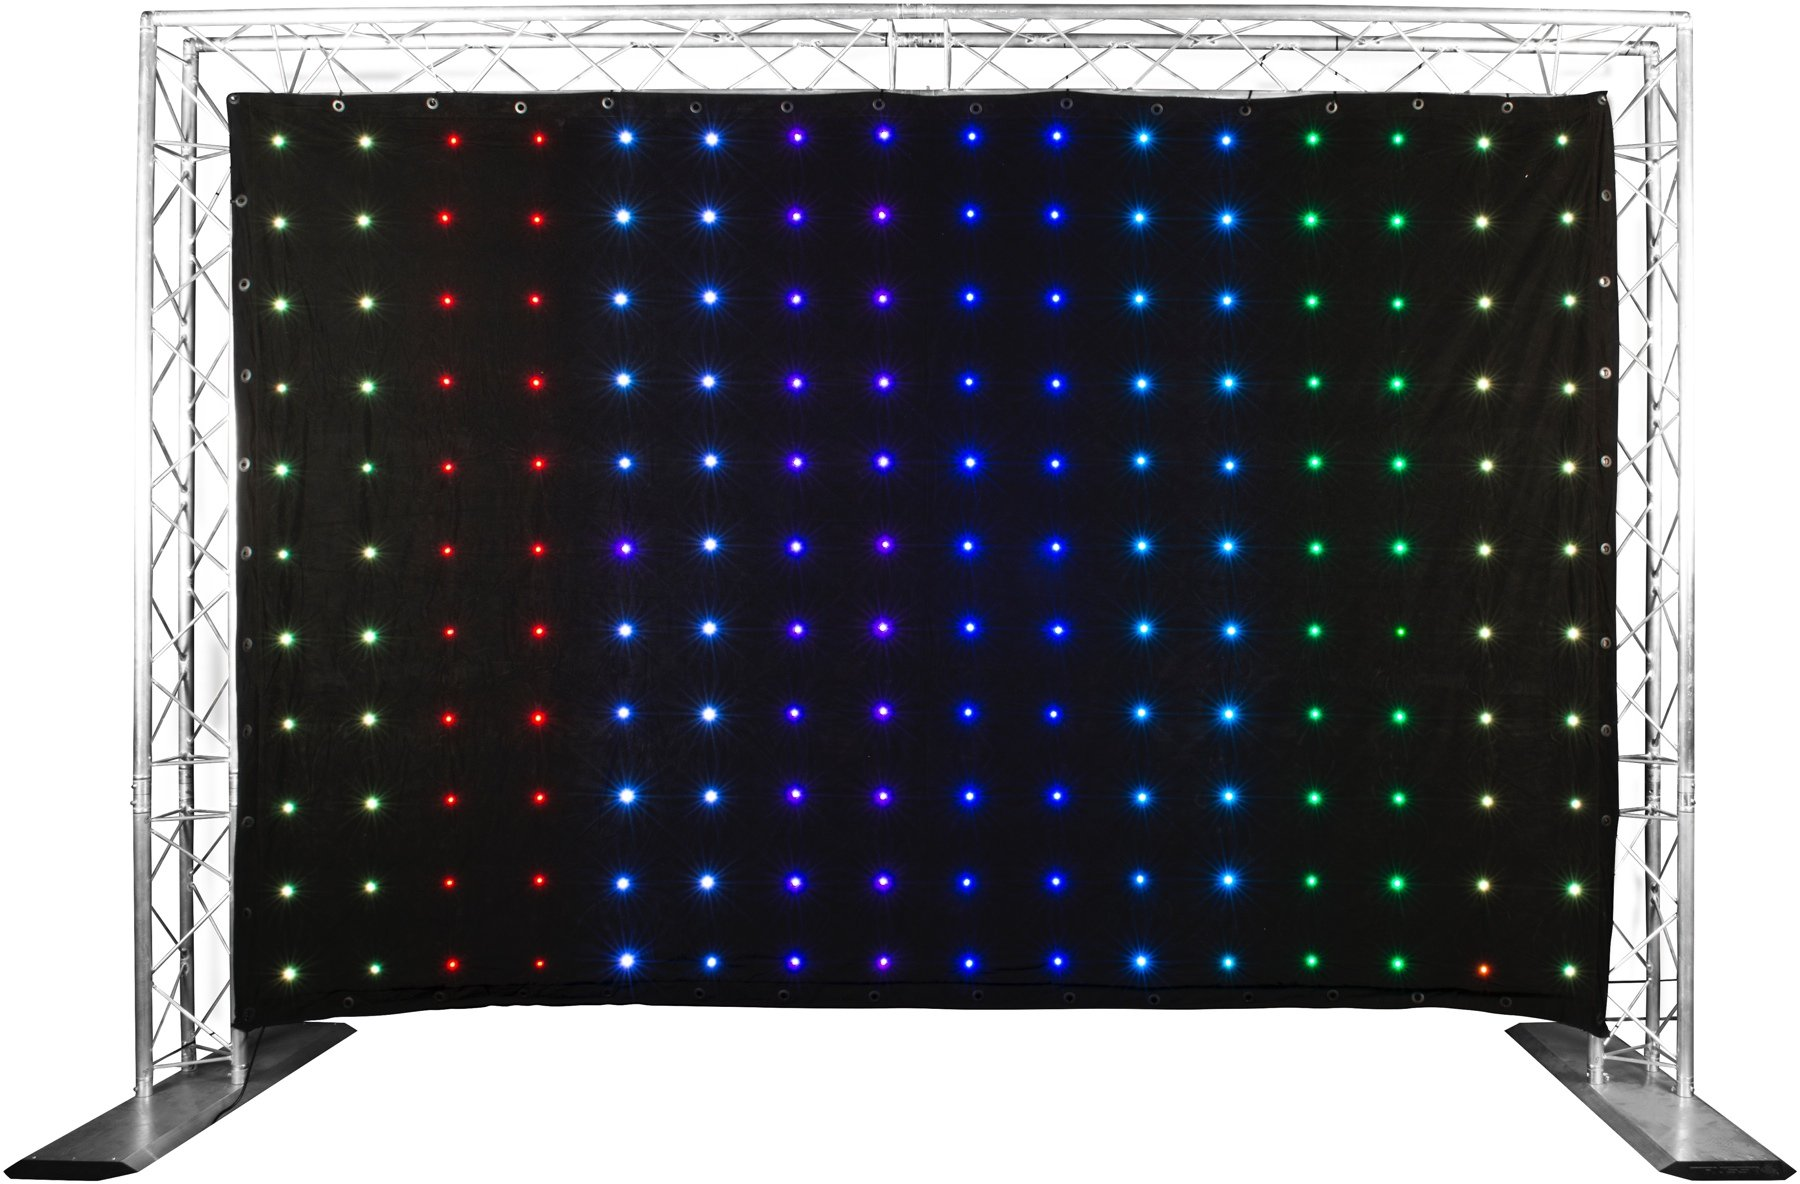 Chauvet DJ MotionDrape LED RGB LED Backdrop Image 1